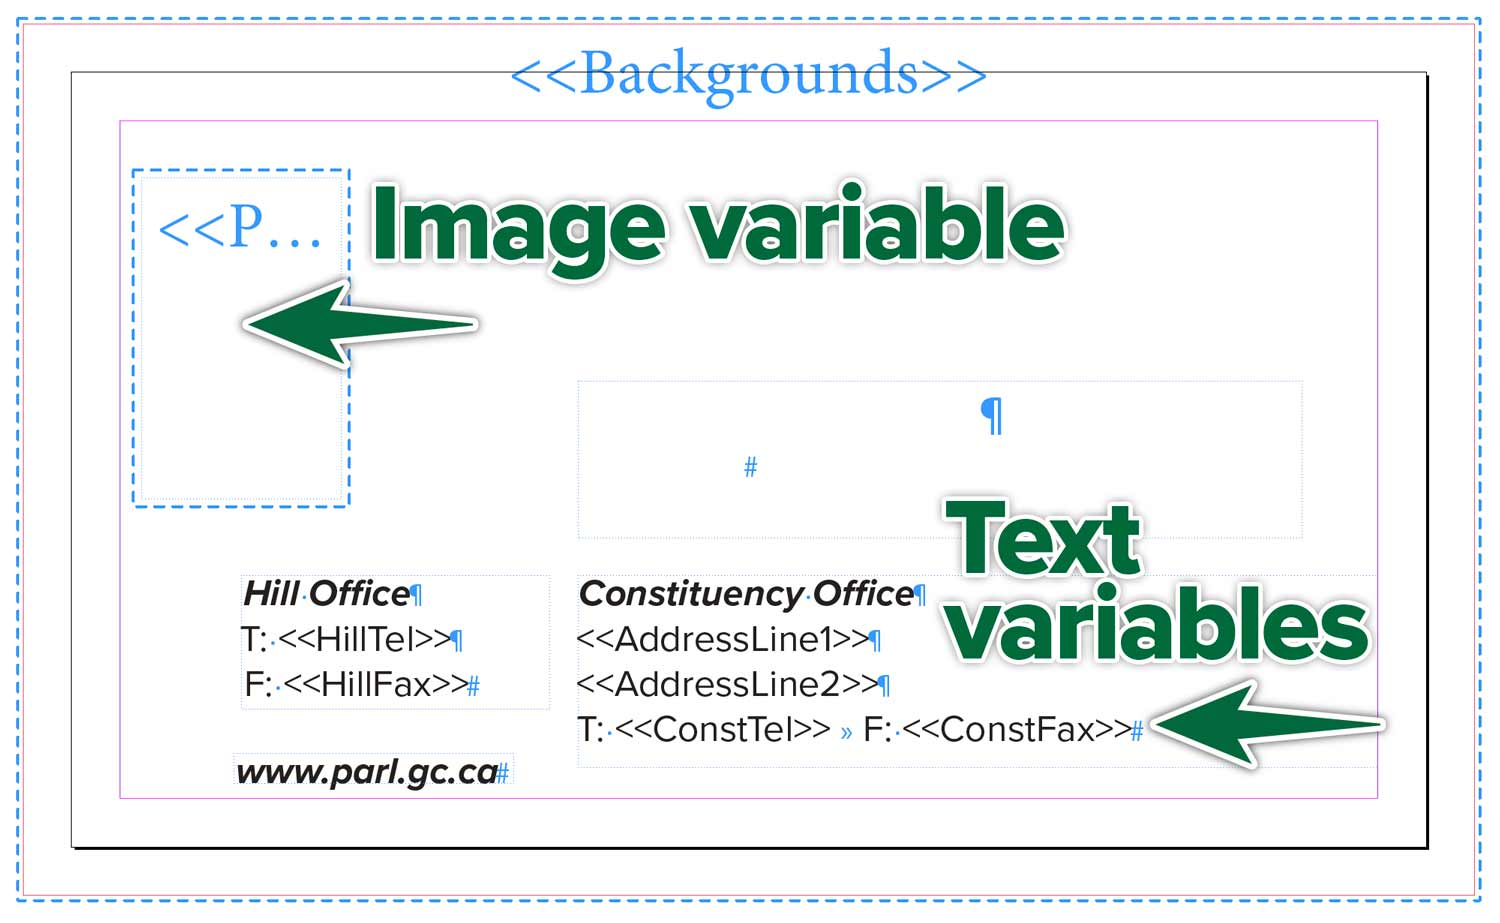 indesign-data-merge-types-of-variables